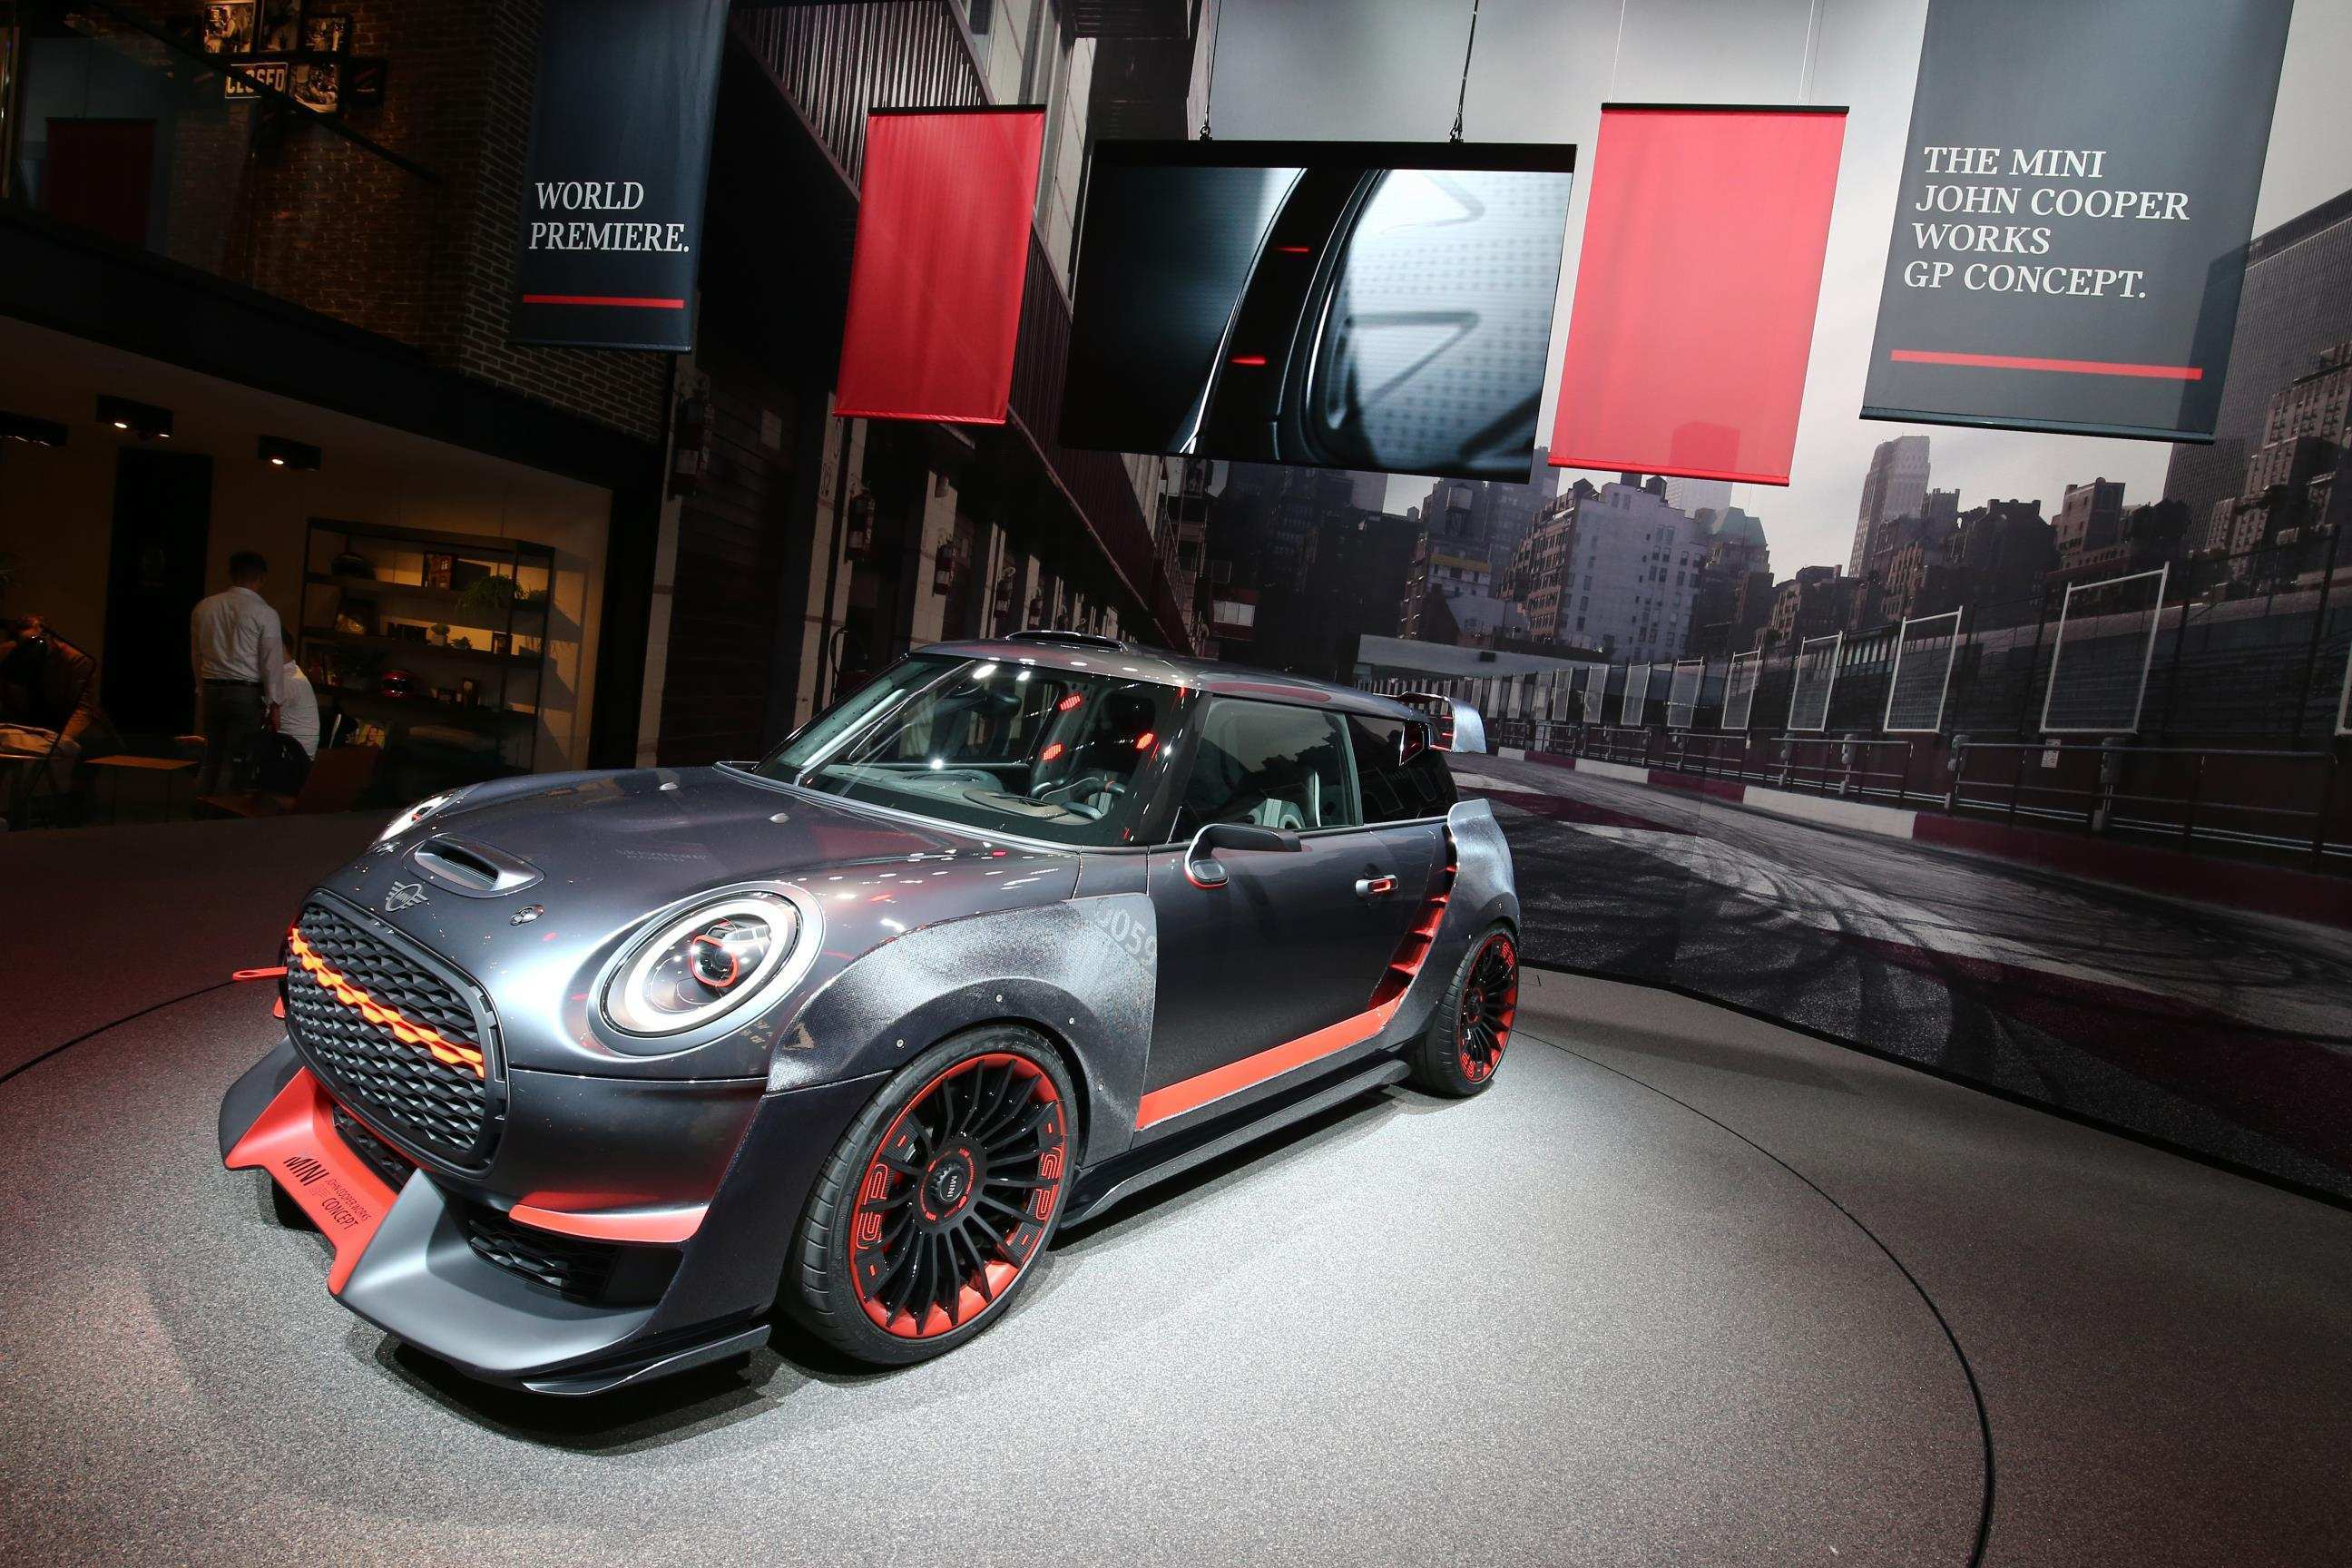 75 Gallery of 2020 Mini Exterior and Interior for 2020 Mini